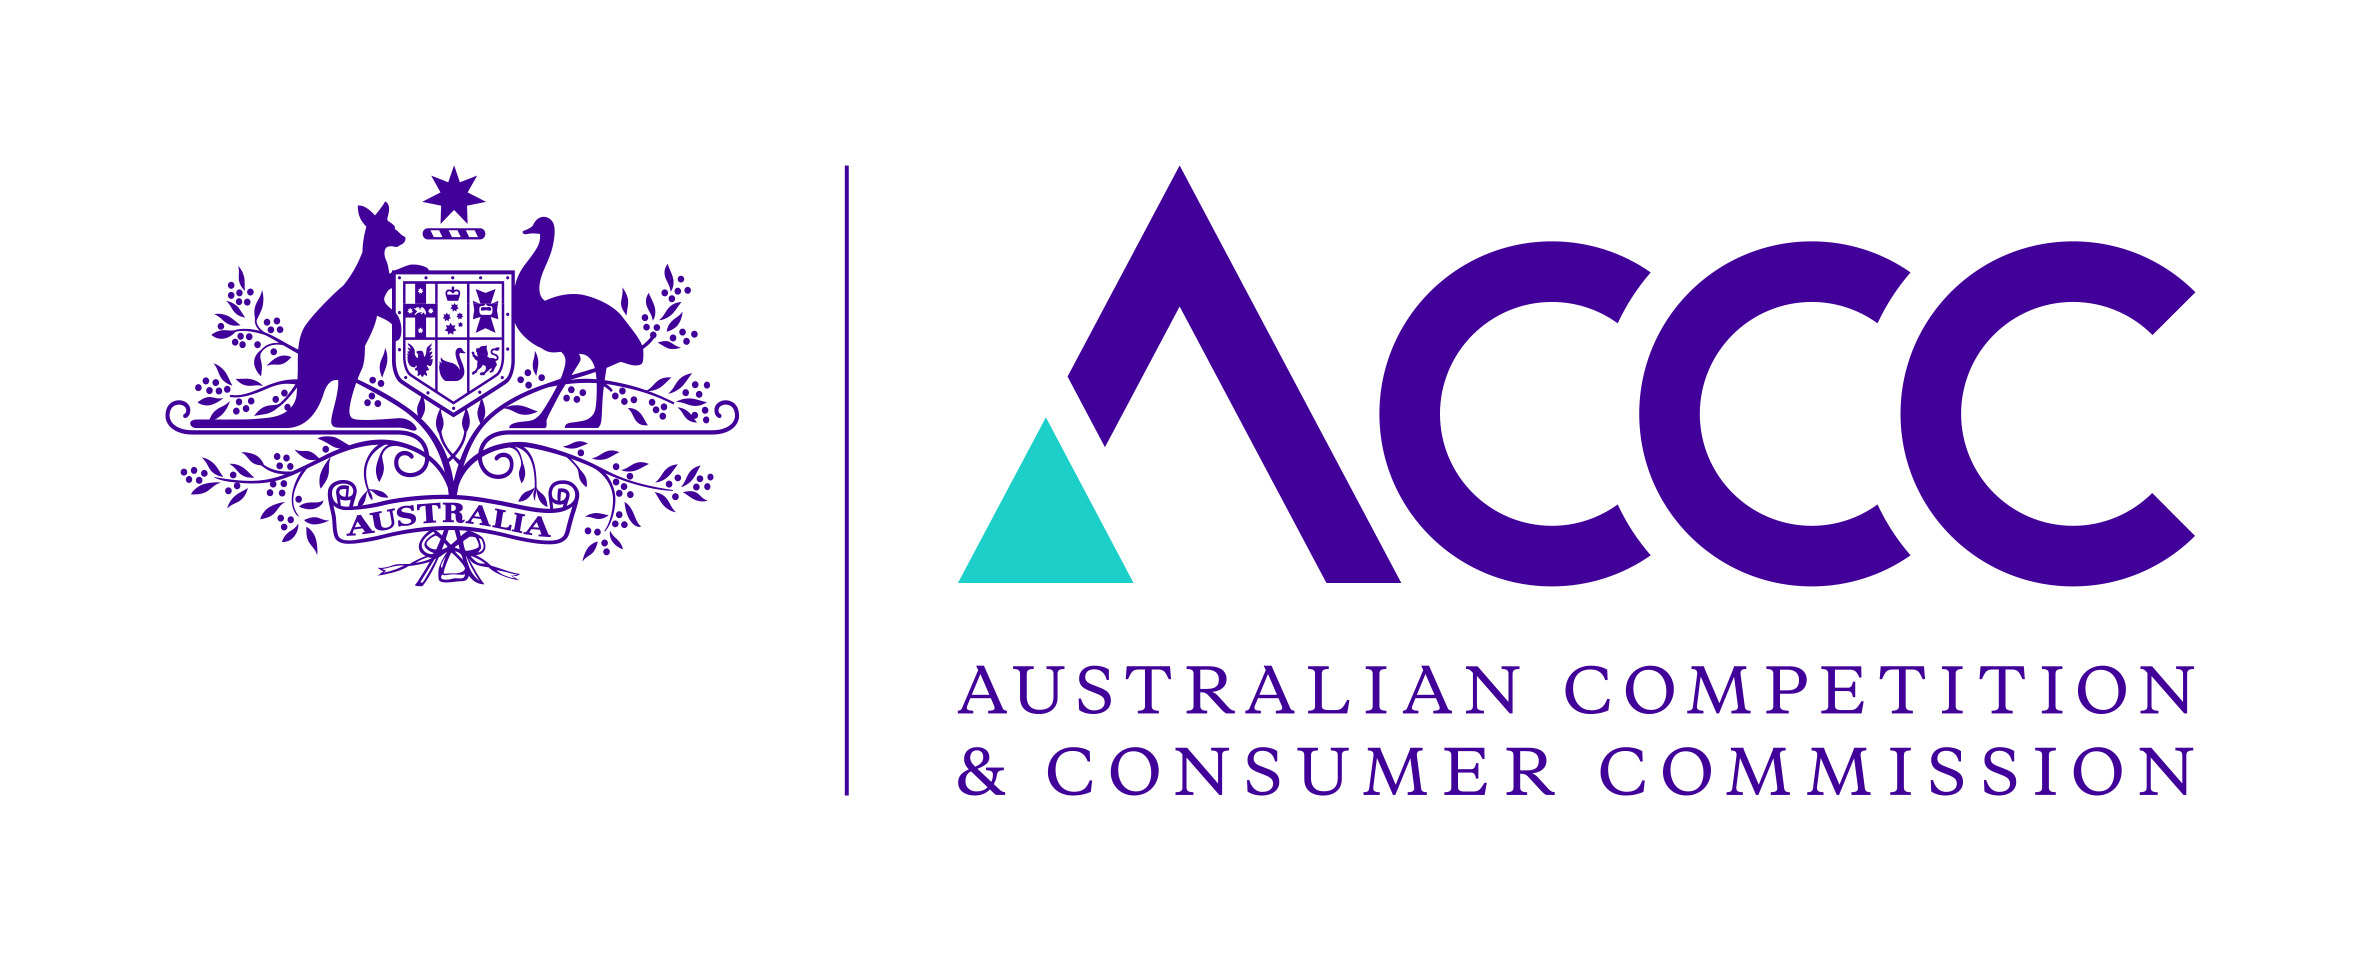 Australian Competition and Consumer Commission logo